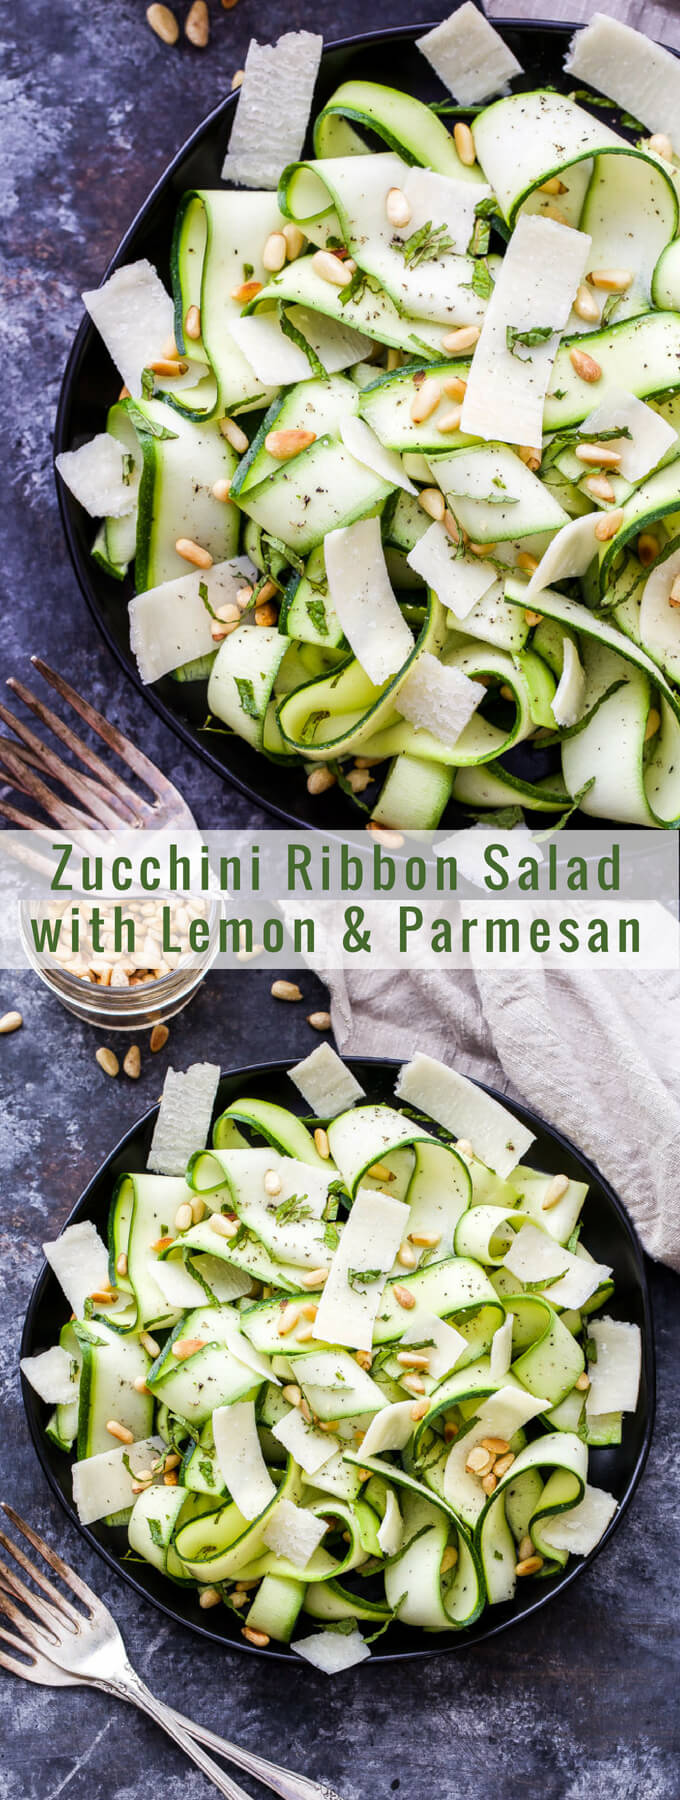 Zucchini Ribbon Salad with Lemon and Parmesan Cheese is a simple and easy to make salad that's loaded with fresh flavor! It's the perfect way to use this year's summer zucchini crop! #zucchini #salad #glutenfree #lemon #parmesancheese